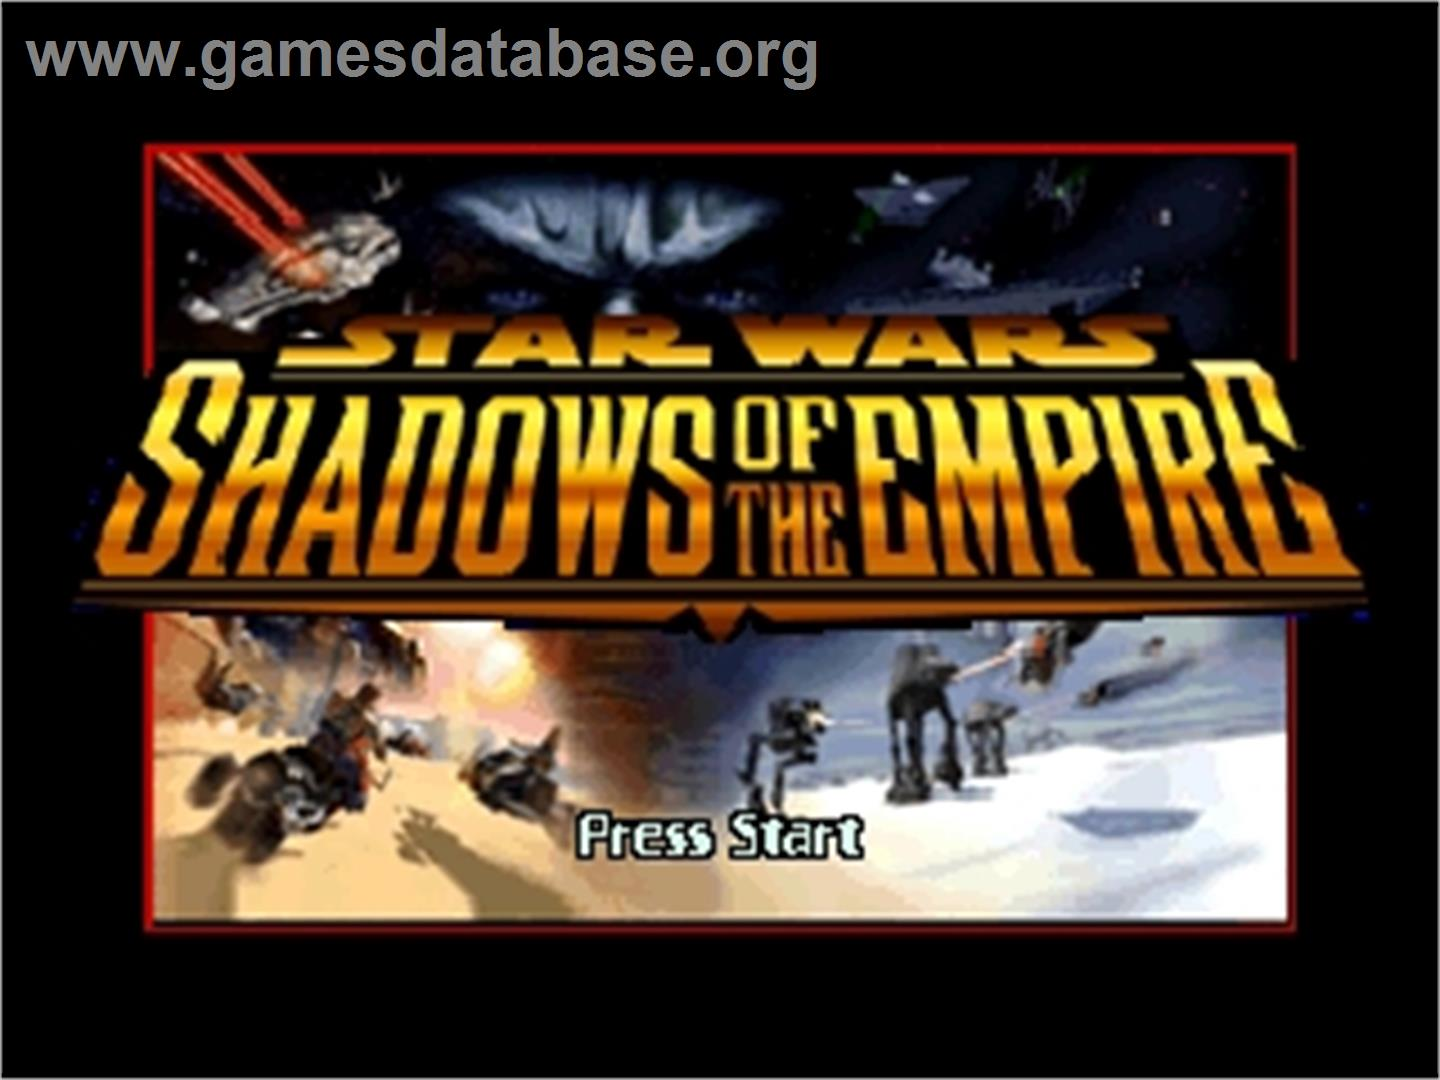 Star Wars: Shadows of the Empire - Nintendo N64 - Artwork - Title Screen